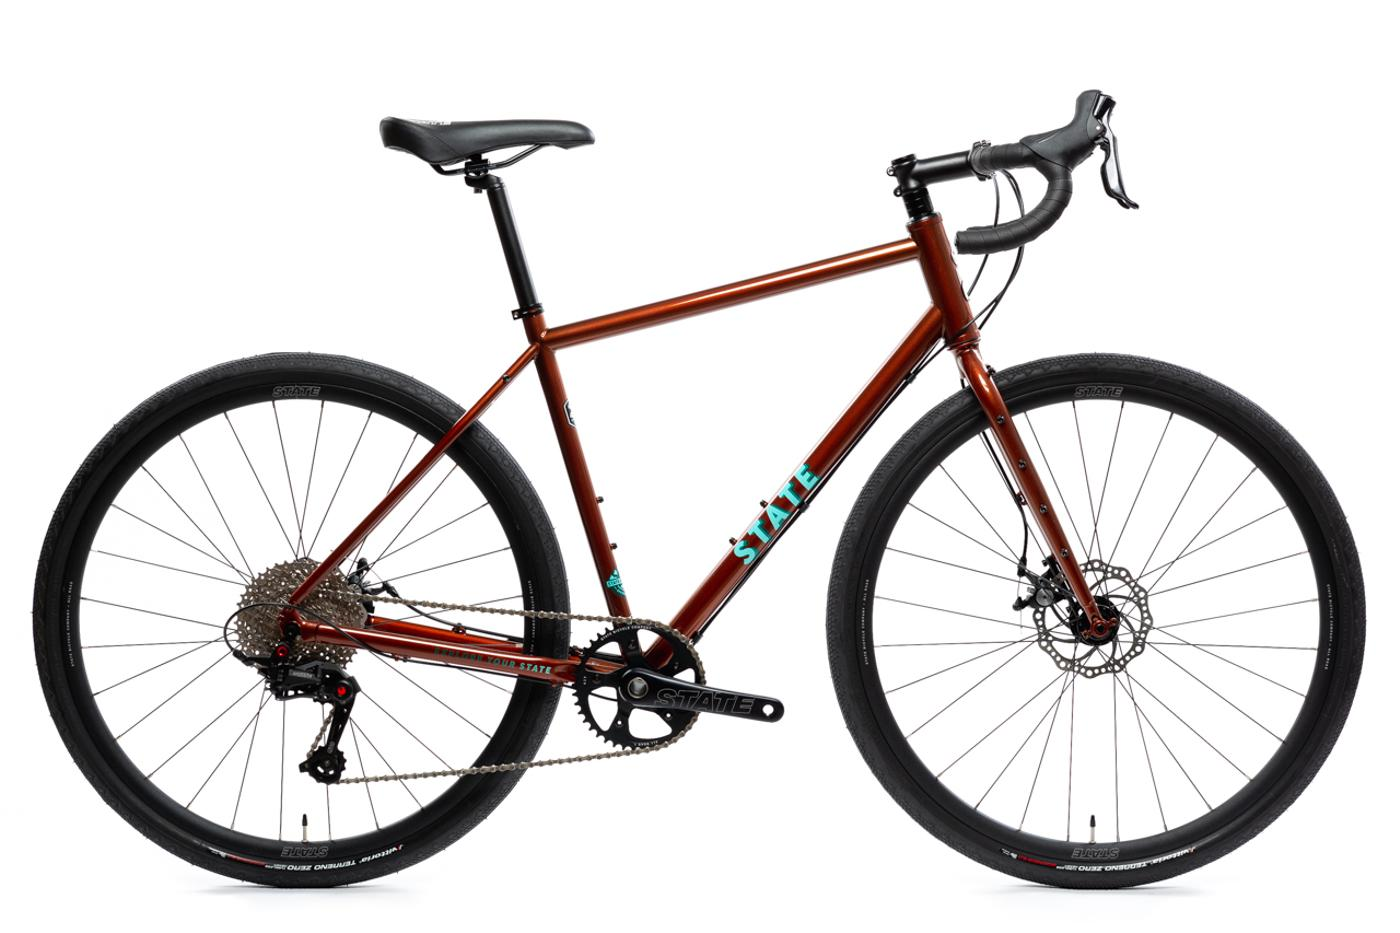 State Bicycle's 4130 All-Road Gets a New Look